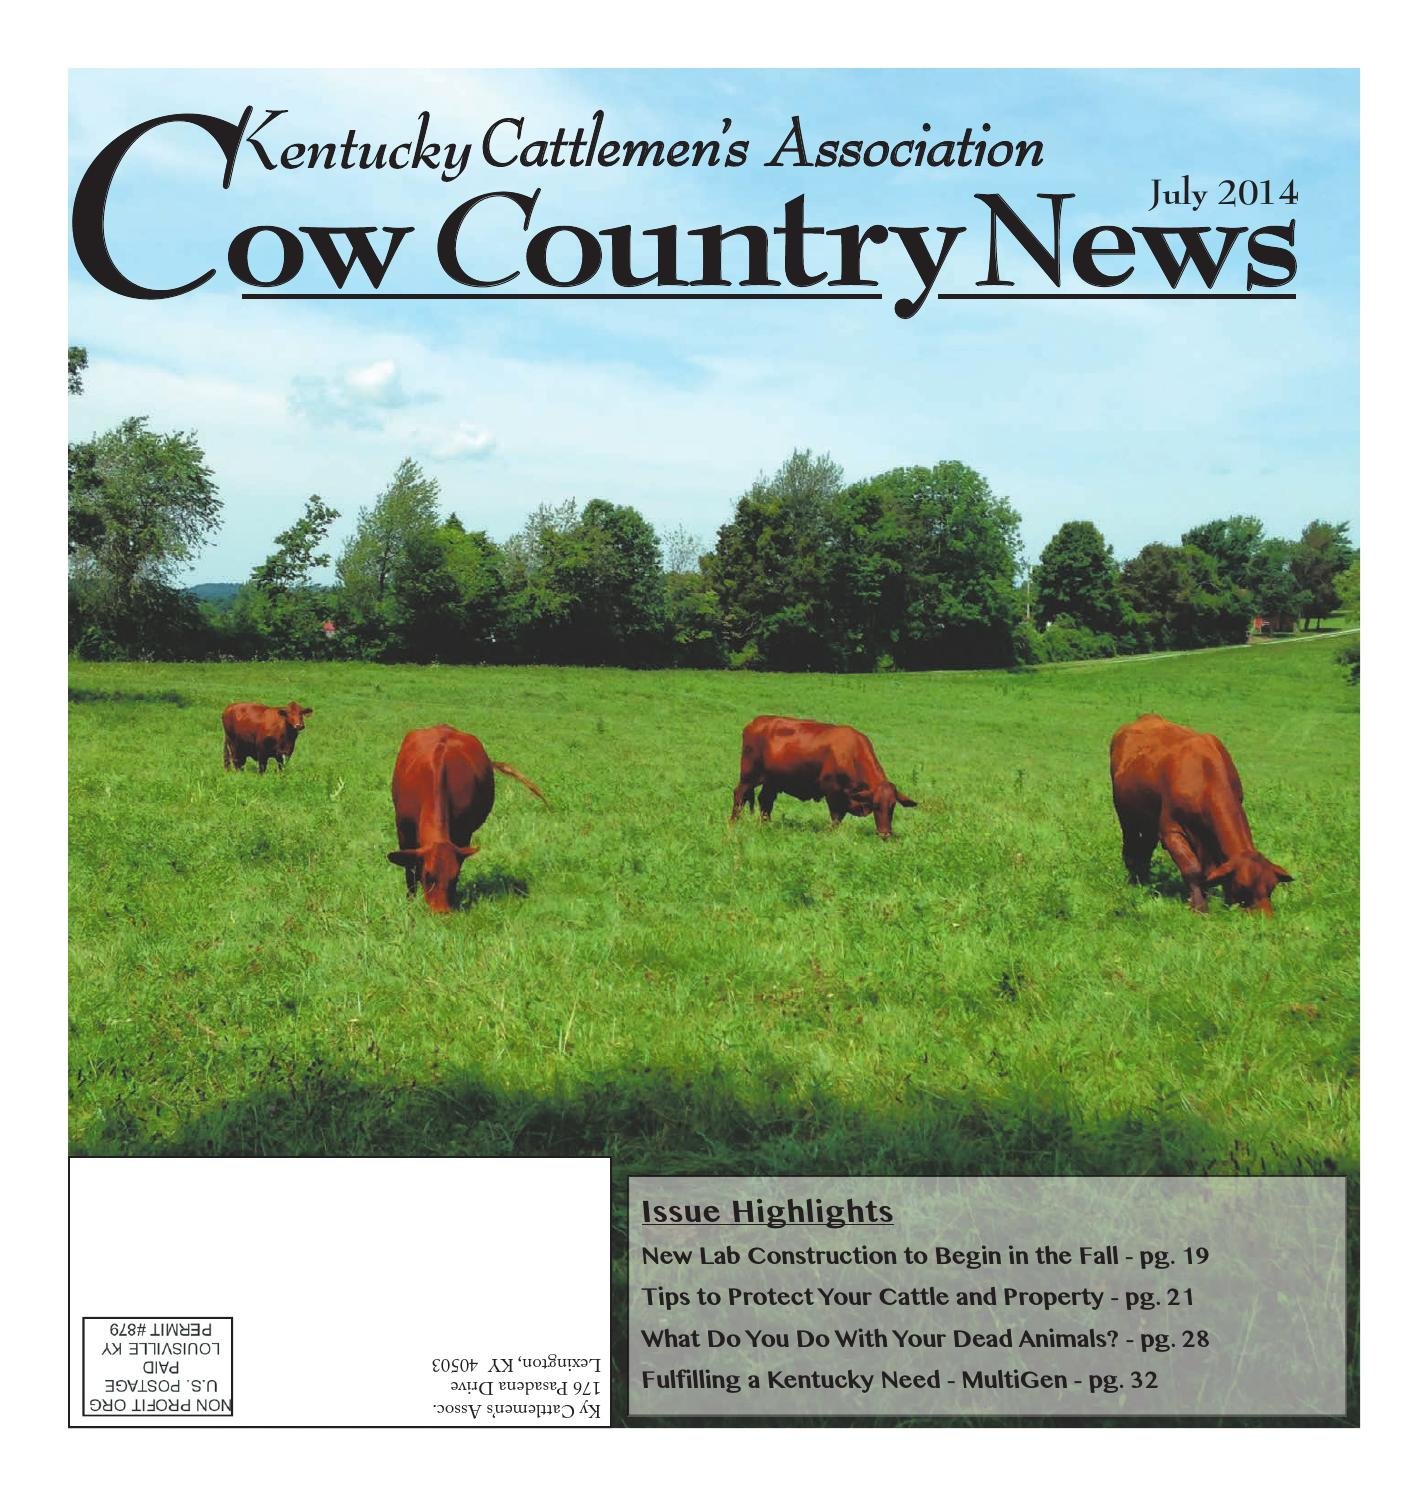 the kentucky cattlemans association essay Welcome ohio cattlemen's association vision: maintain profitability and growth of ohio's beef industry mission: member focused and issue driven to represent the business interests and way of life important to ohio's cattle families.